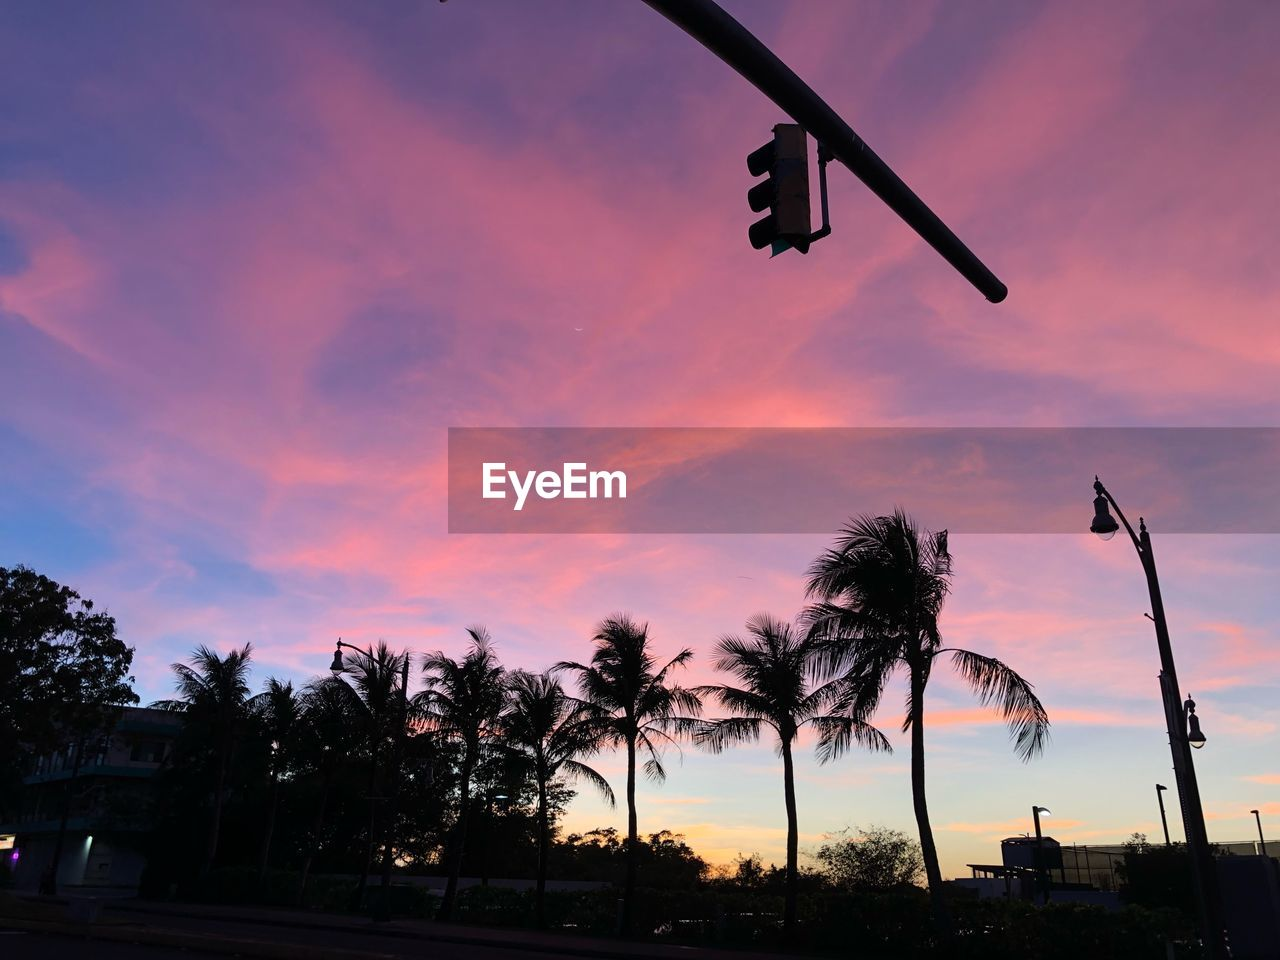 sunset, sky, tree, plant, cloud - sky, nature, silhouette, low angle view, beauty in nature, orange color, lighting equipment, no people, scenics - nature, street light, street, palm tree, outdoors, architecture, sign, tropical climate